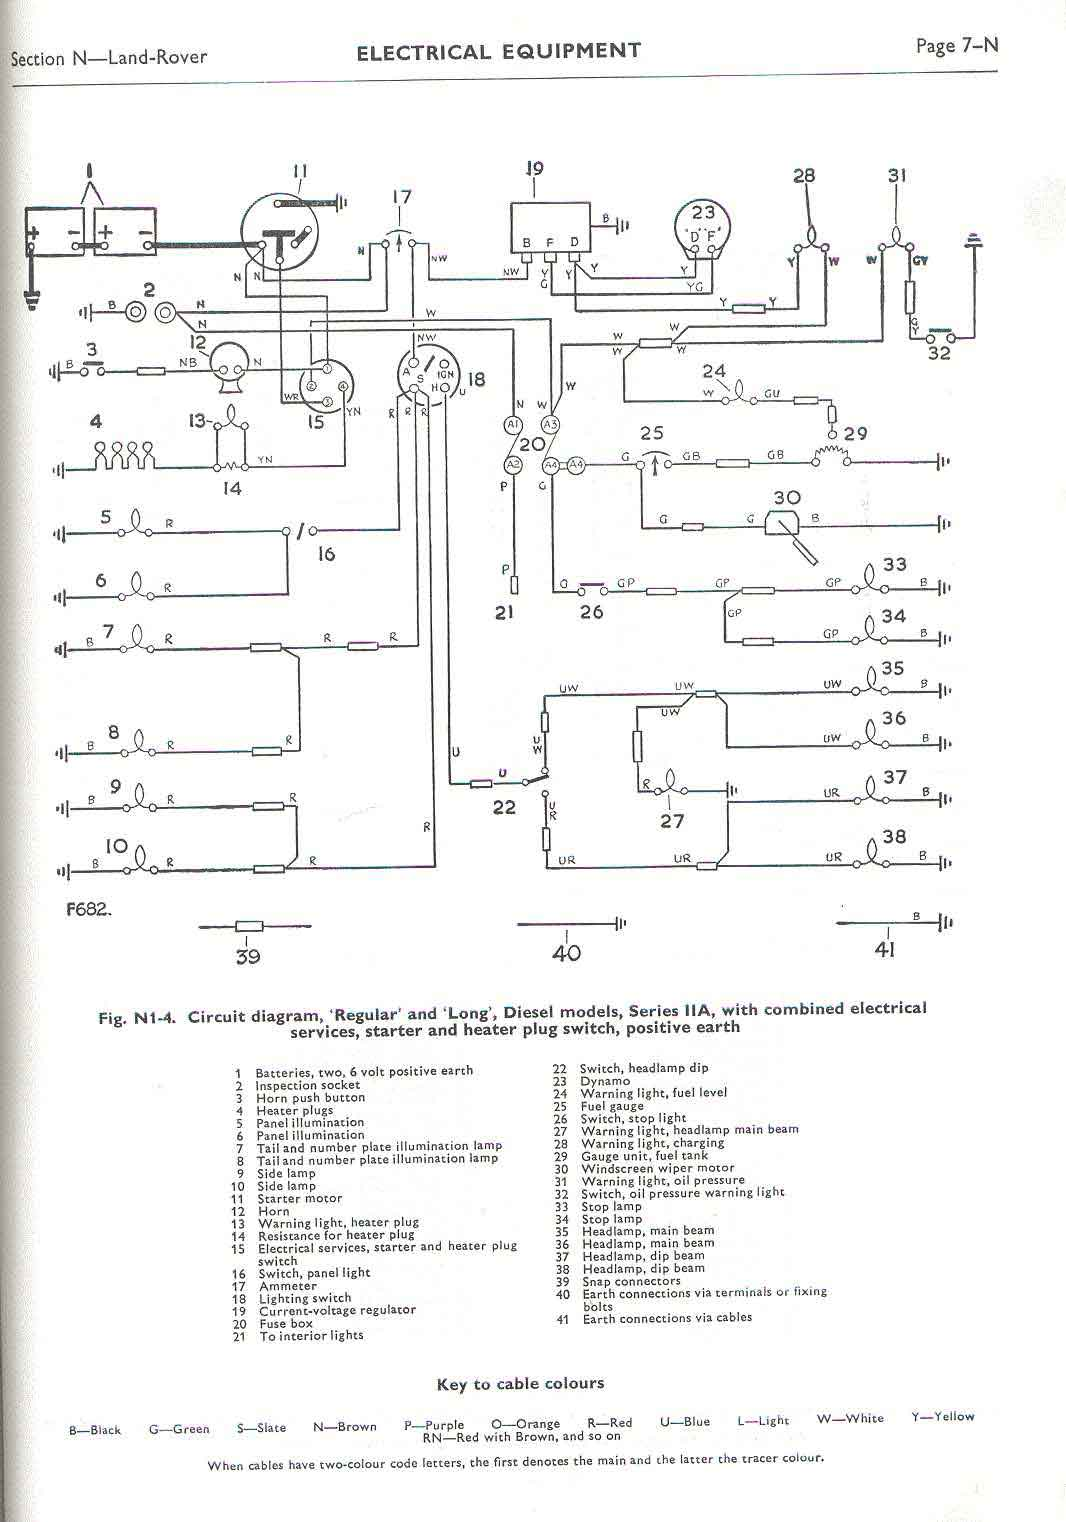 Electrical Wiring Diagram Land Rover Faq Repair Maintenance Series Diagrams